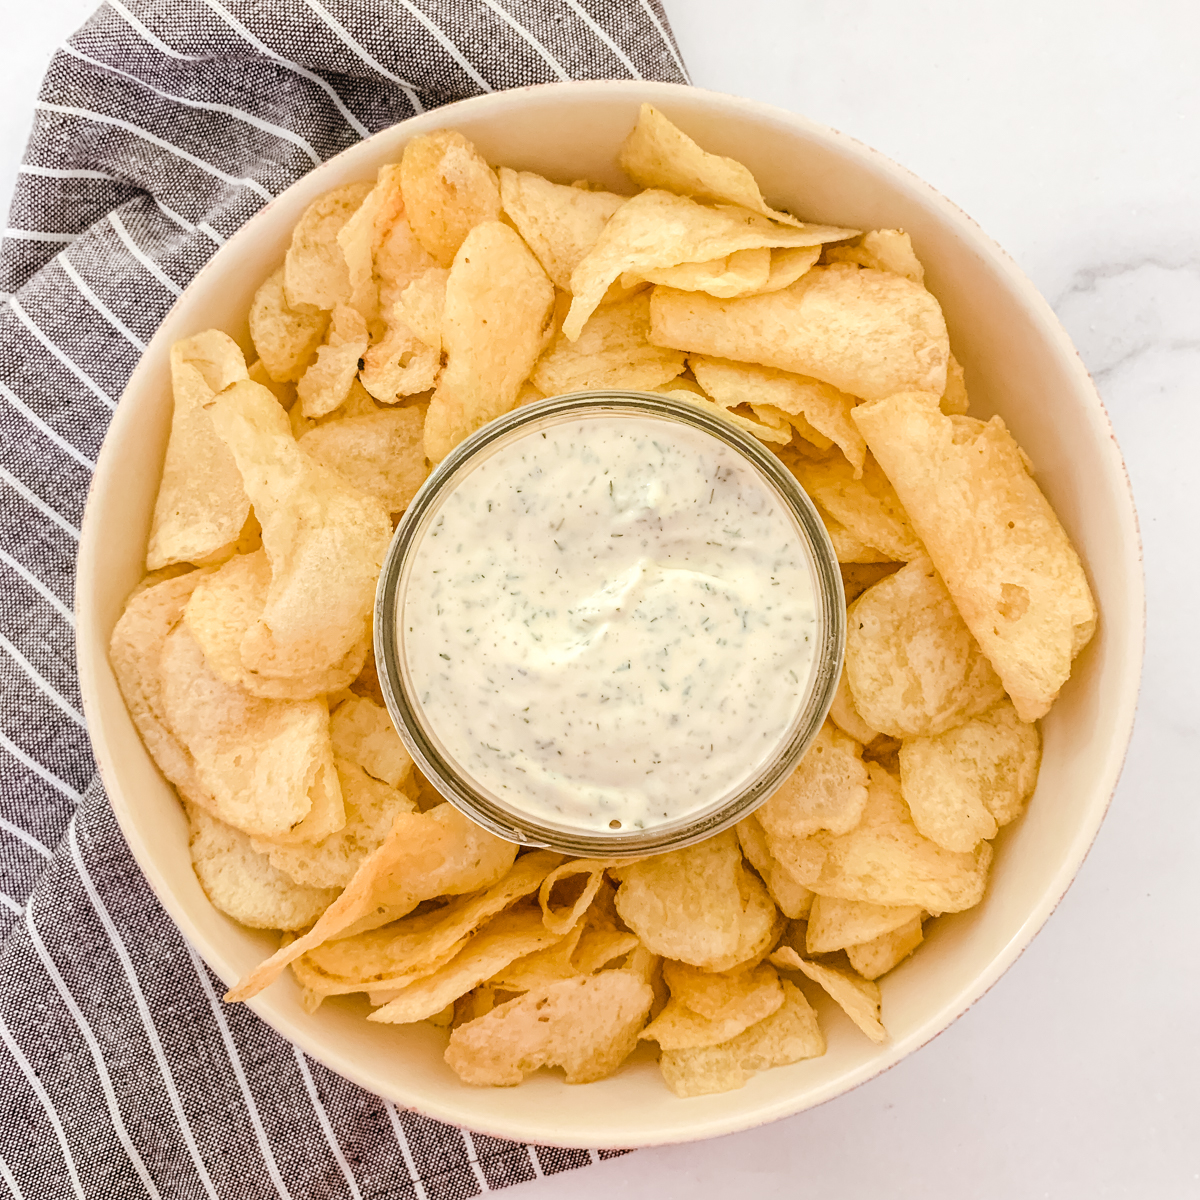 Homemade dairy-free ranch dip with chips.